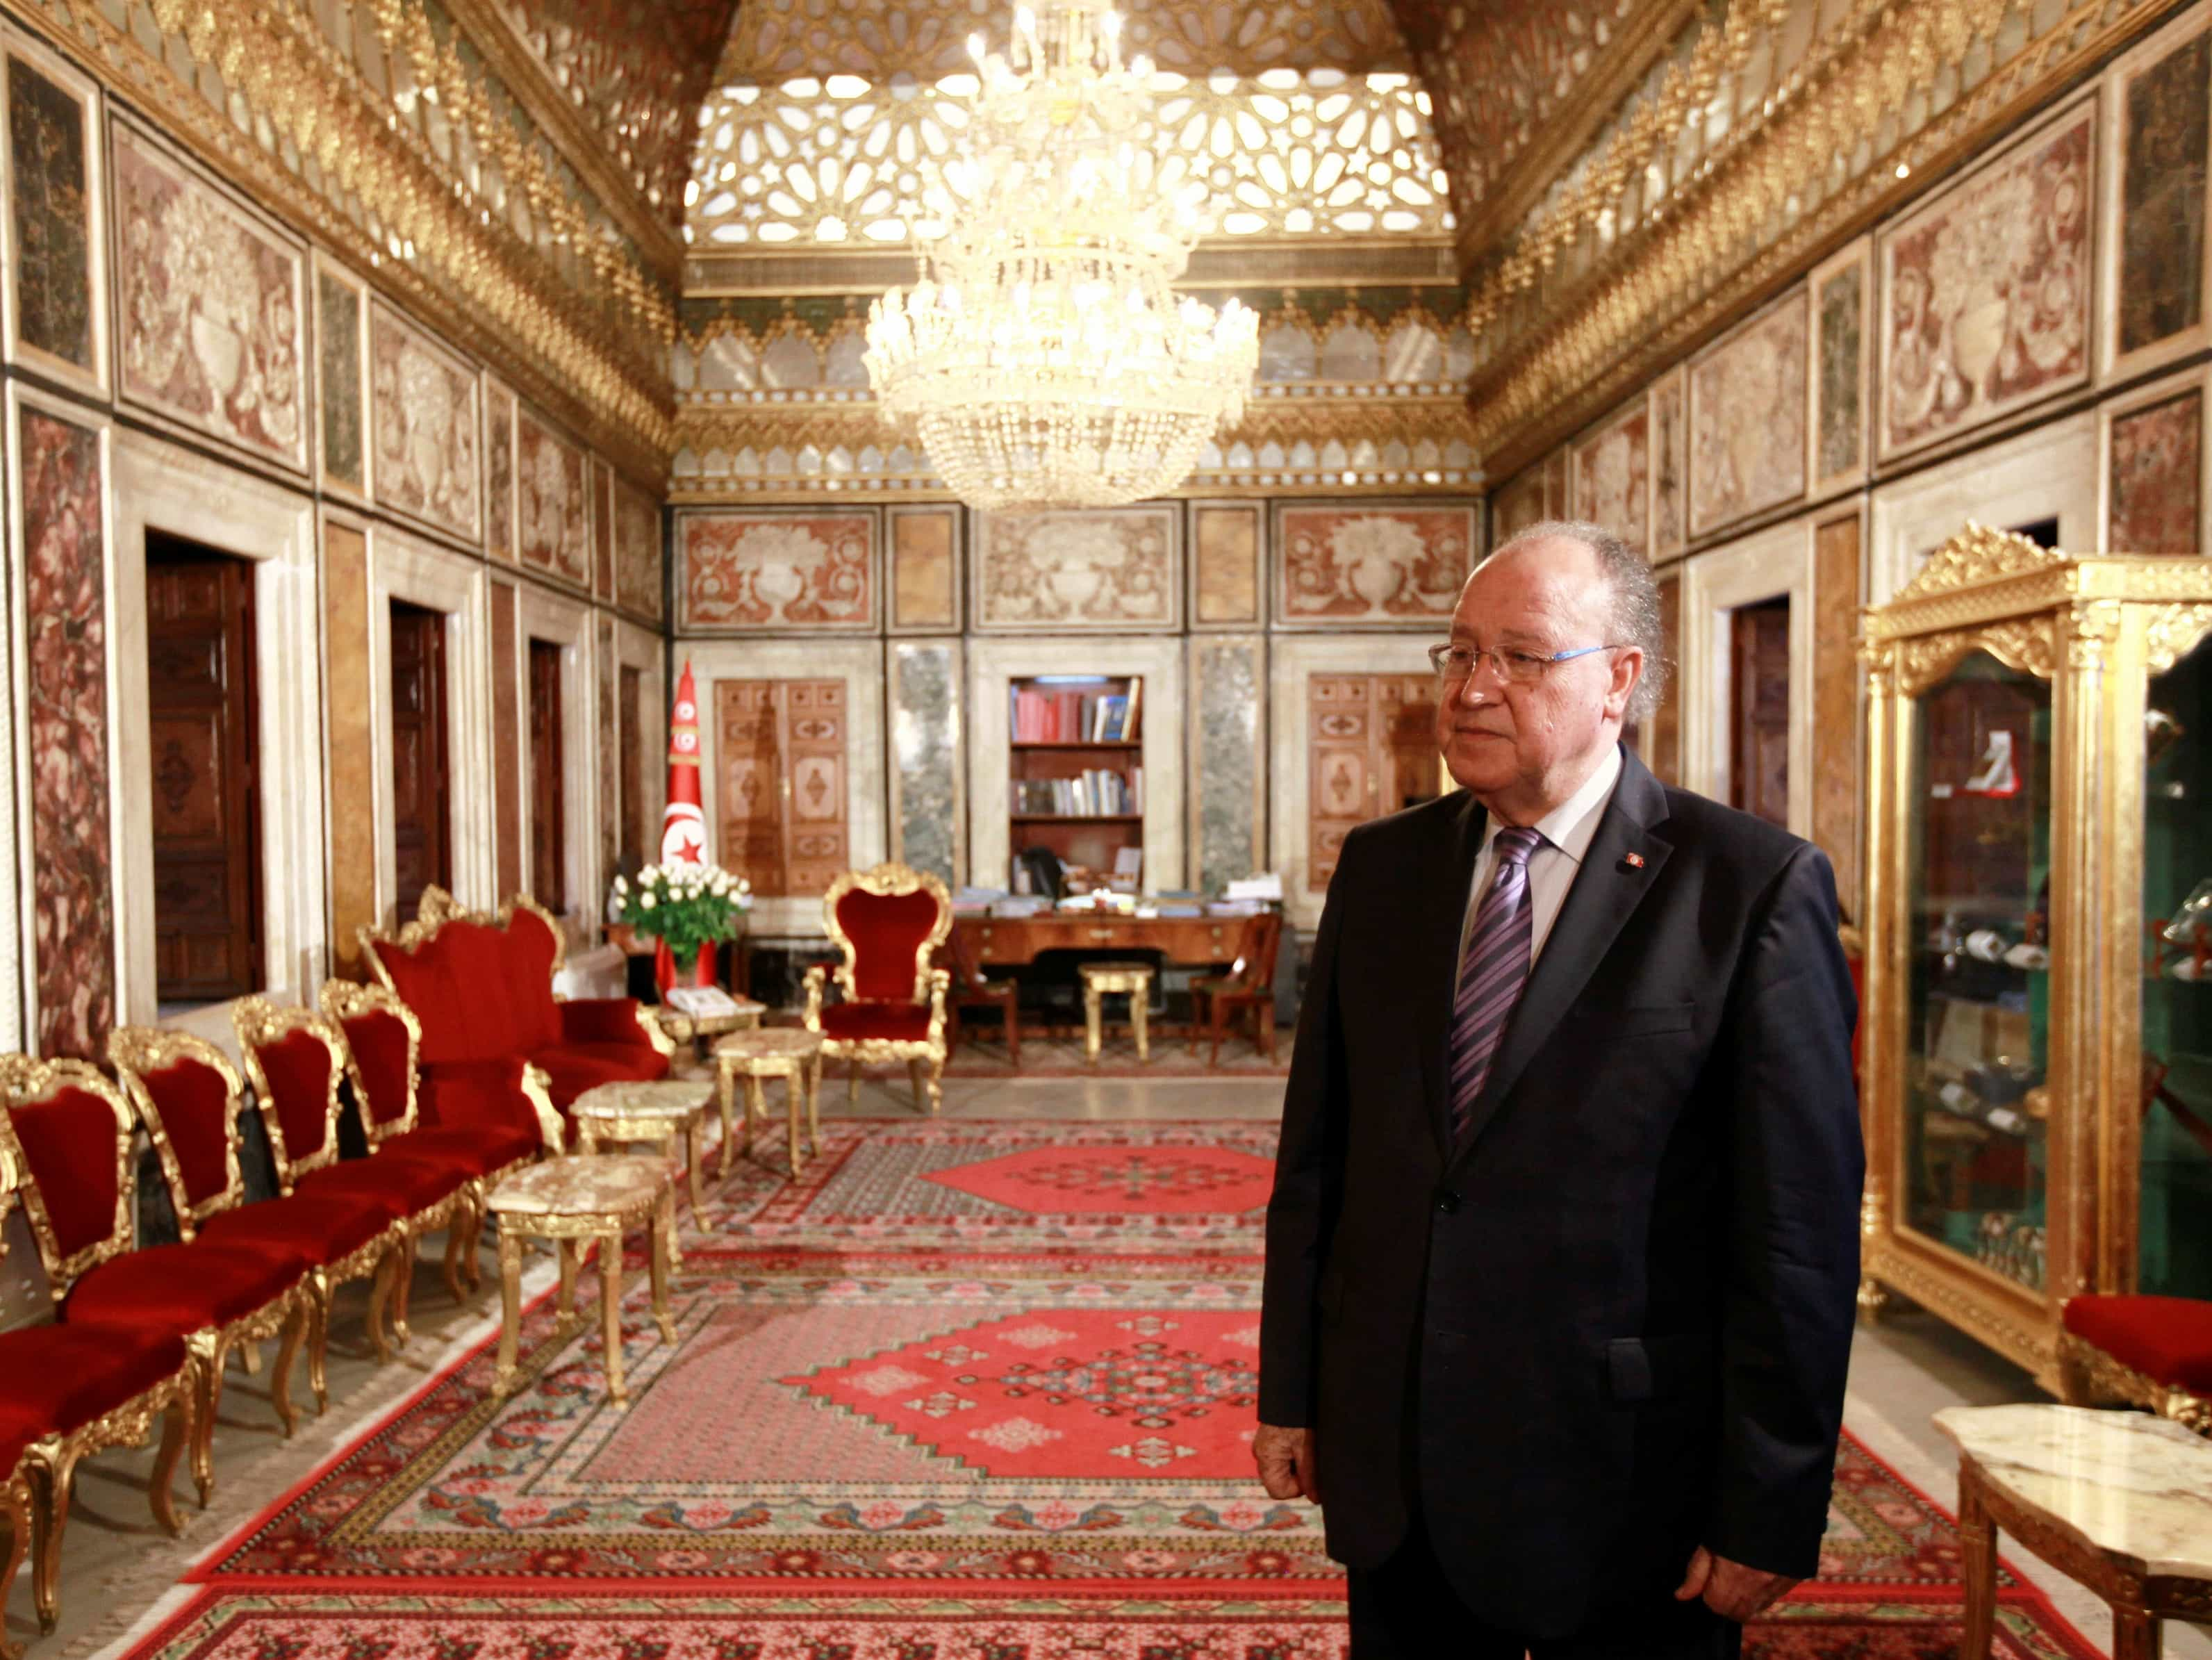 Tunisian Constituent Assembly President Mustapha Ben Jaafar in the assembly building in Tunis in November 2013. After months of crisis, a new constitution is about to be signed in to law., REUTERS/Anis Mili